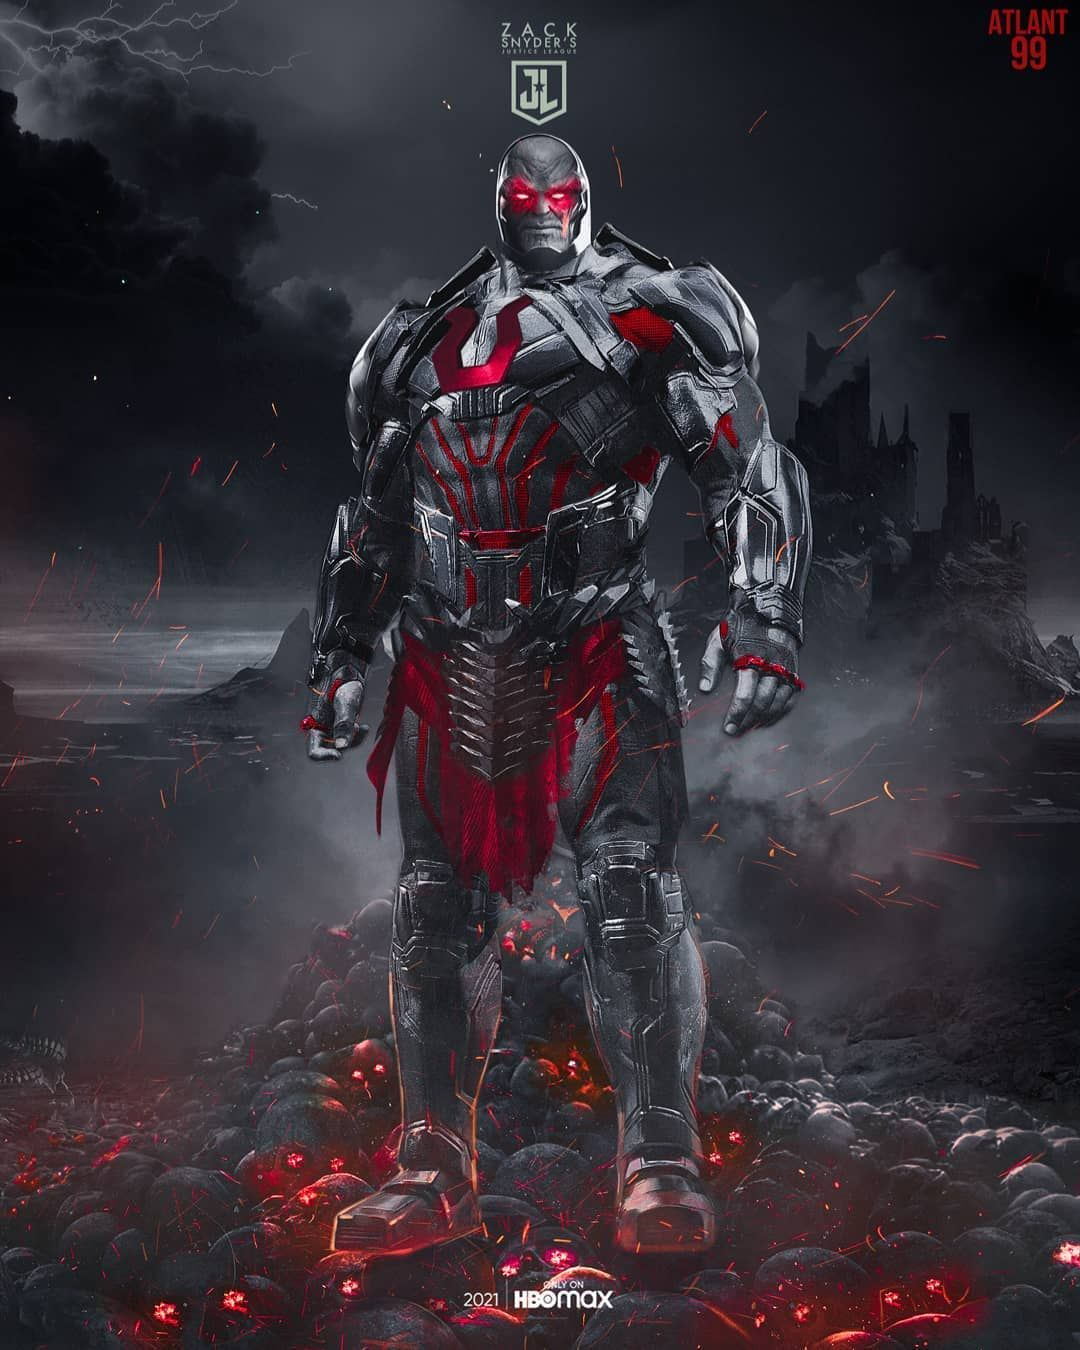 A T L A N T On Instagram Darkseid 1 4 Zack Snyder S Justice League Hbomax 2021 Dccomics Hbomax Dc Comics Wallpaper Dc Comics Artwork Darkseid Dc Comics